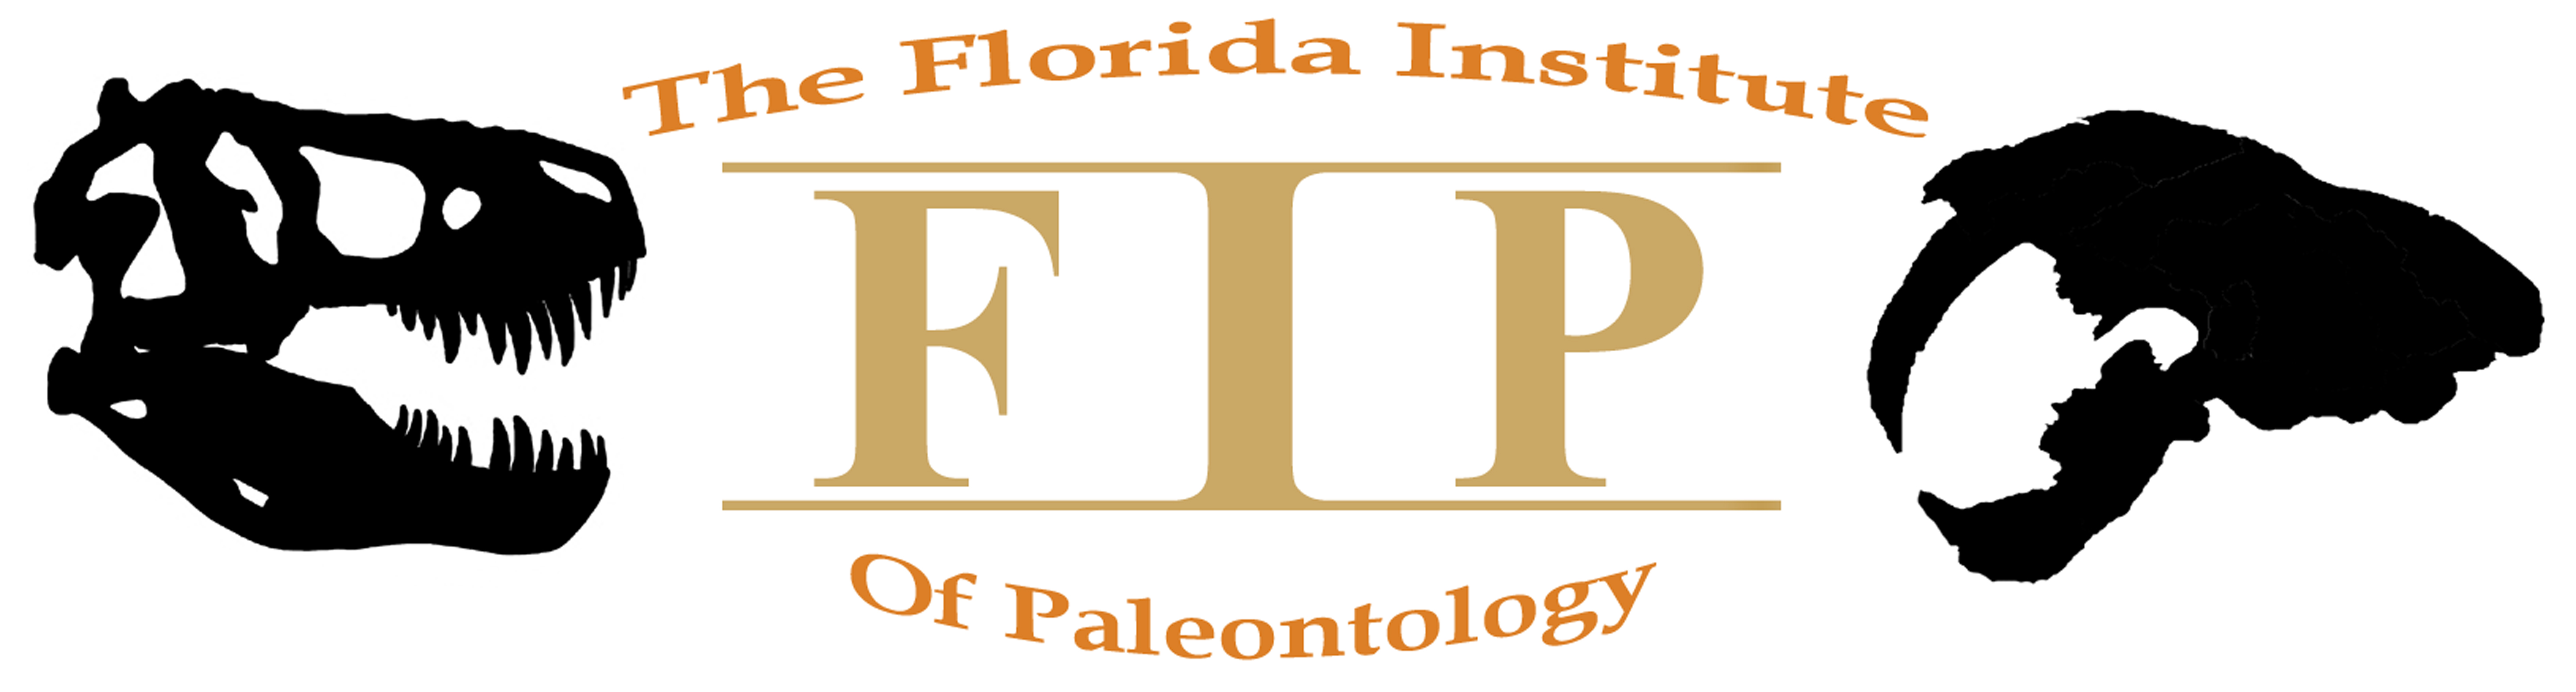 Florida Institute of Paleontology